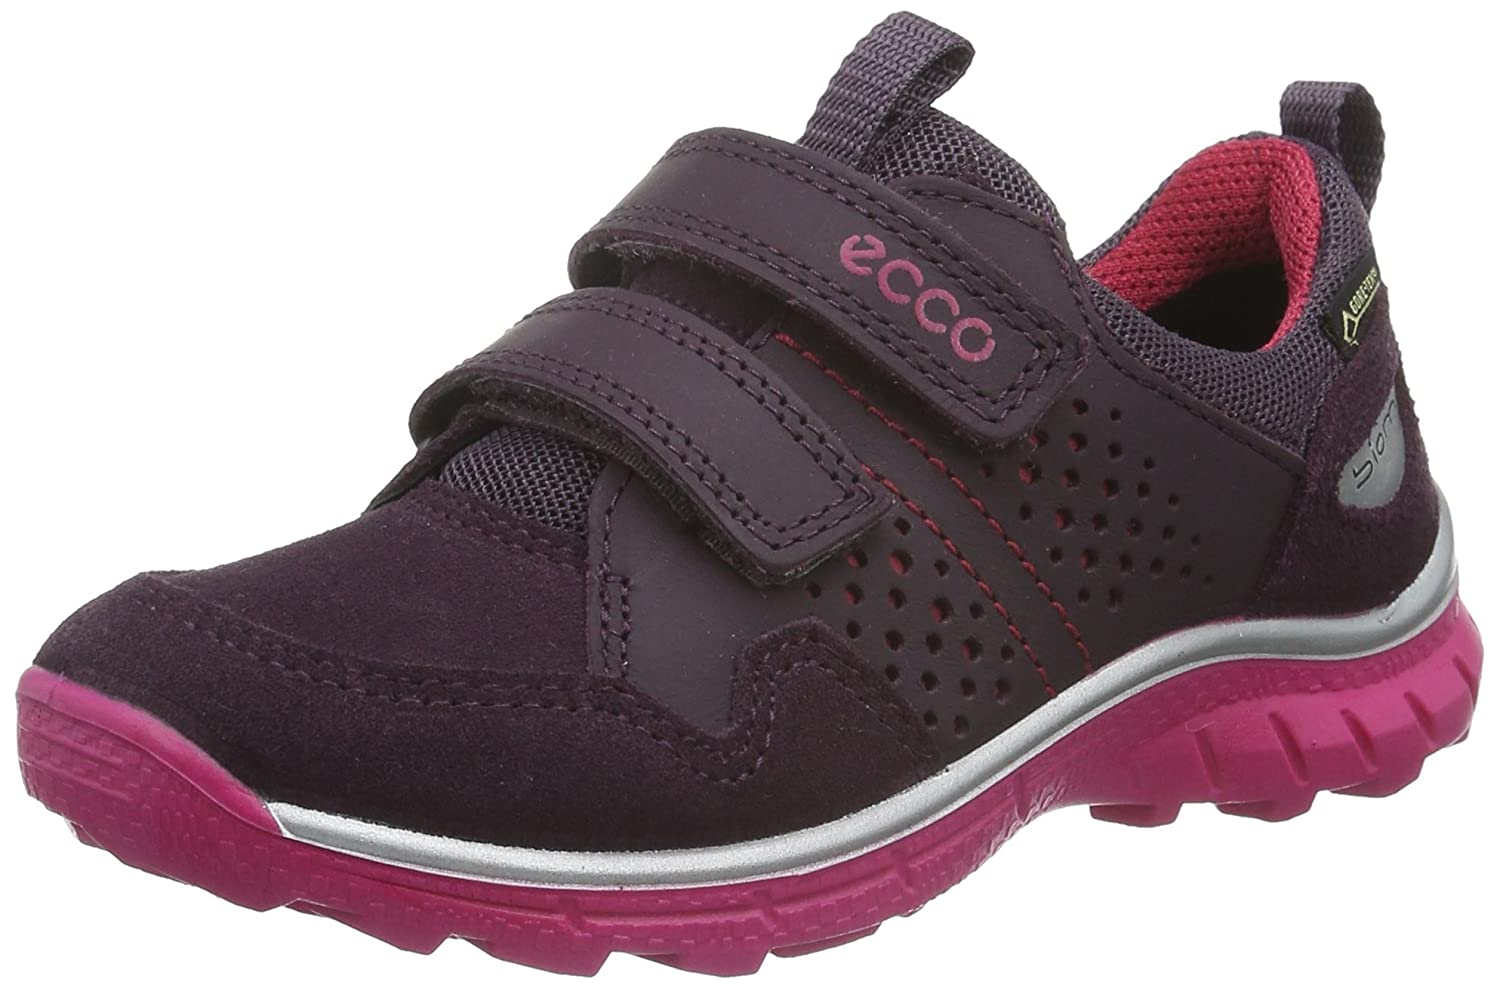 Ecco BIOM Trail, Chaussures Multisport Outdoor Fille